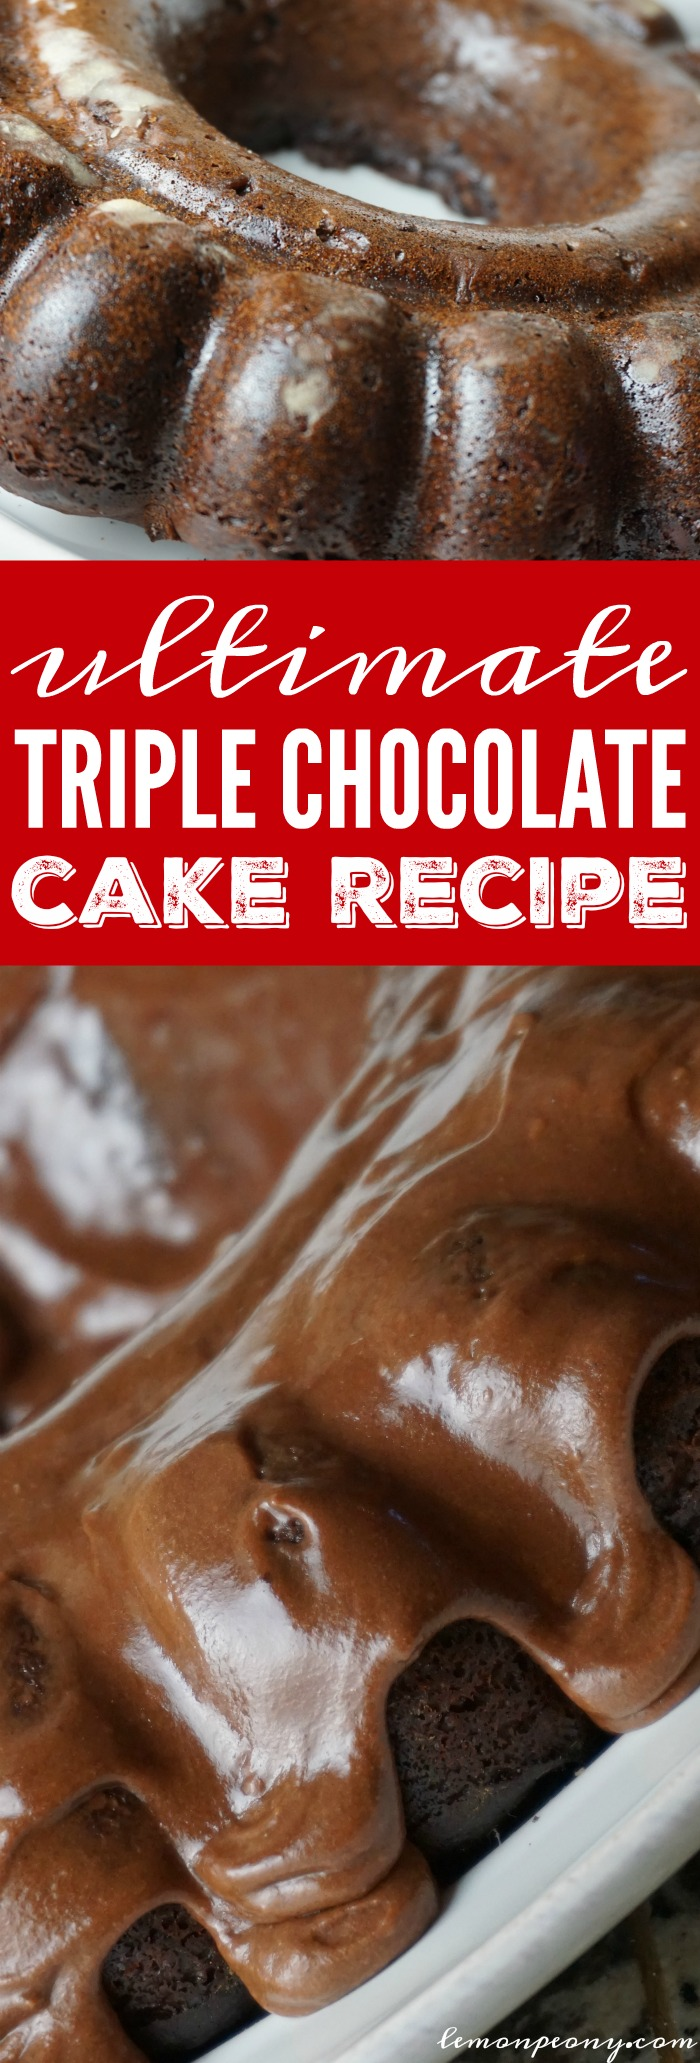 This Ultimate Triple Chocolate Cake Recipe is the PERFECT Dessert Recipe for any Holiday, Valentine's Day, Christmas, Birthdays, or Special Occasions!